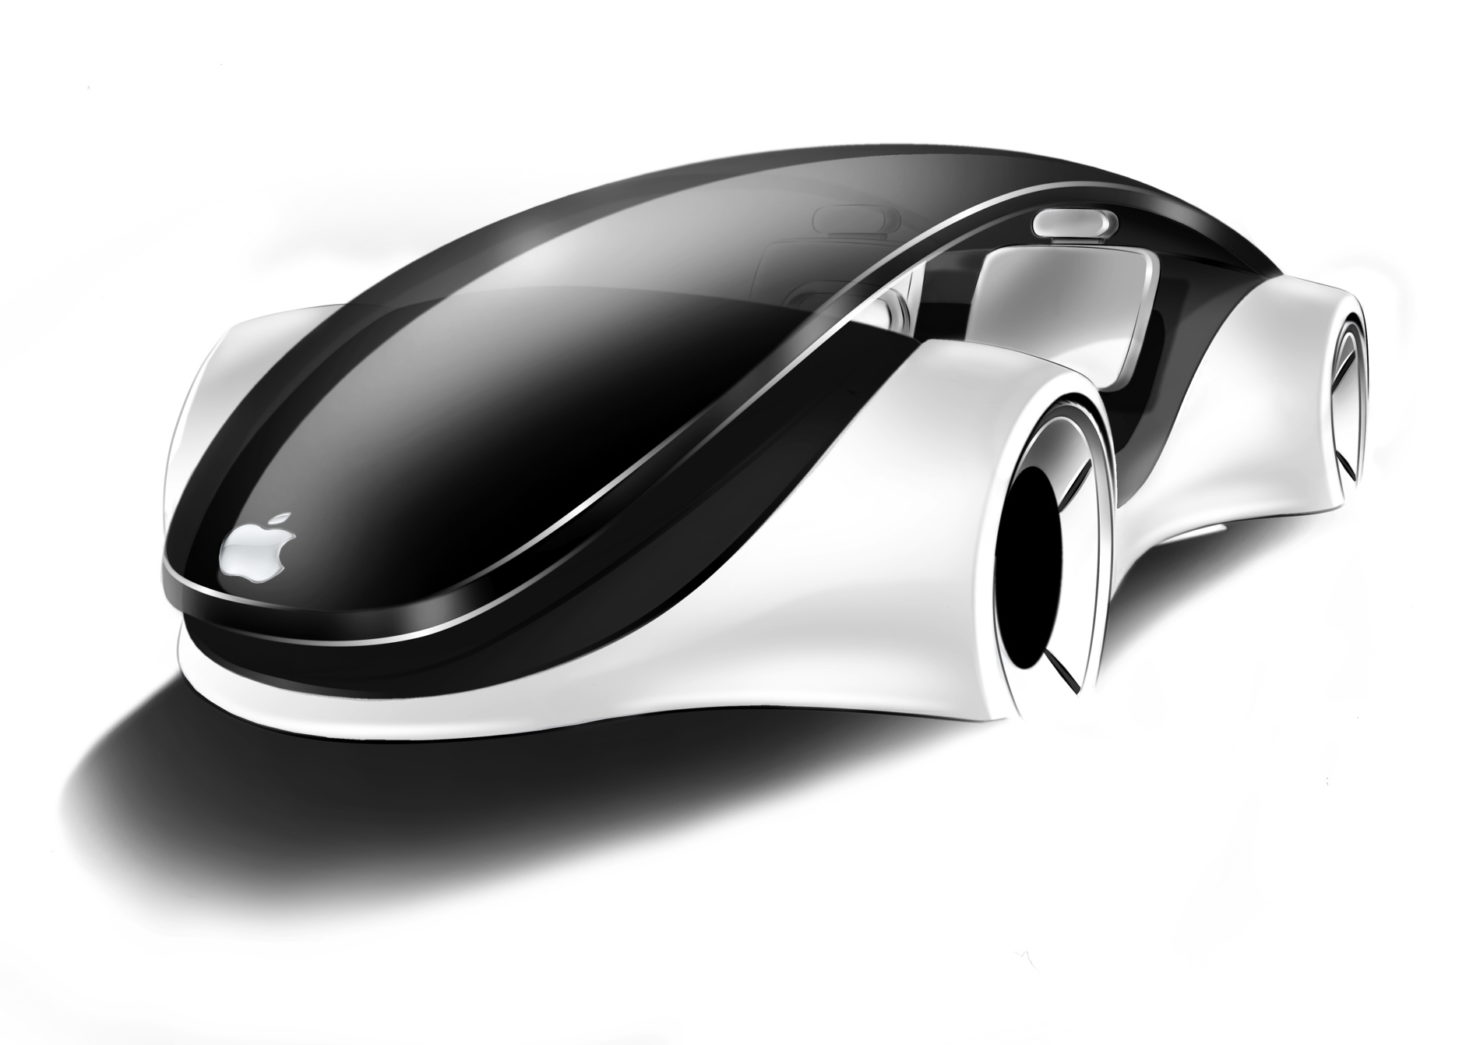 Apple Chatting w/ South Korean Component Makers over Apple Car